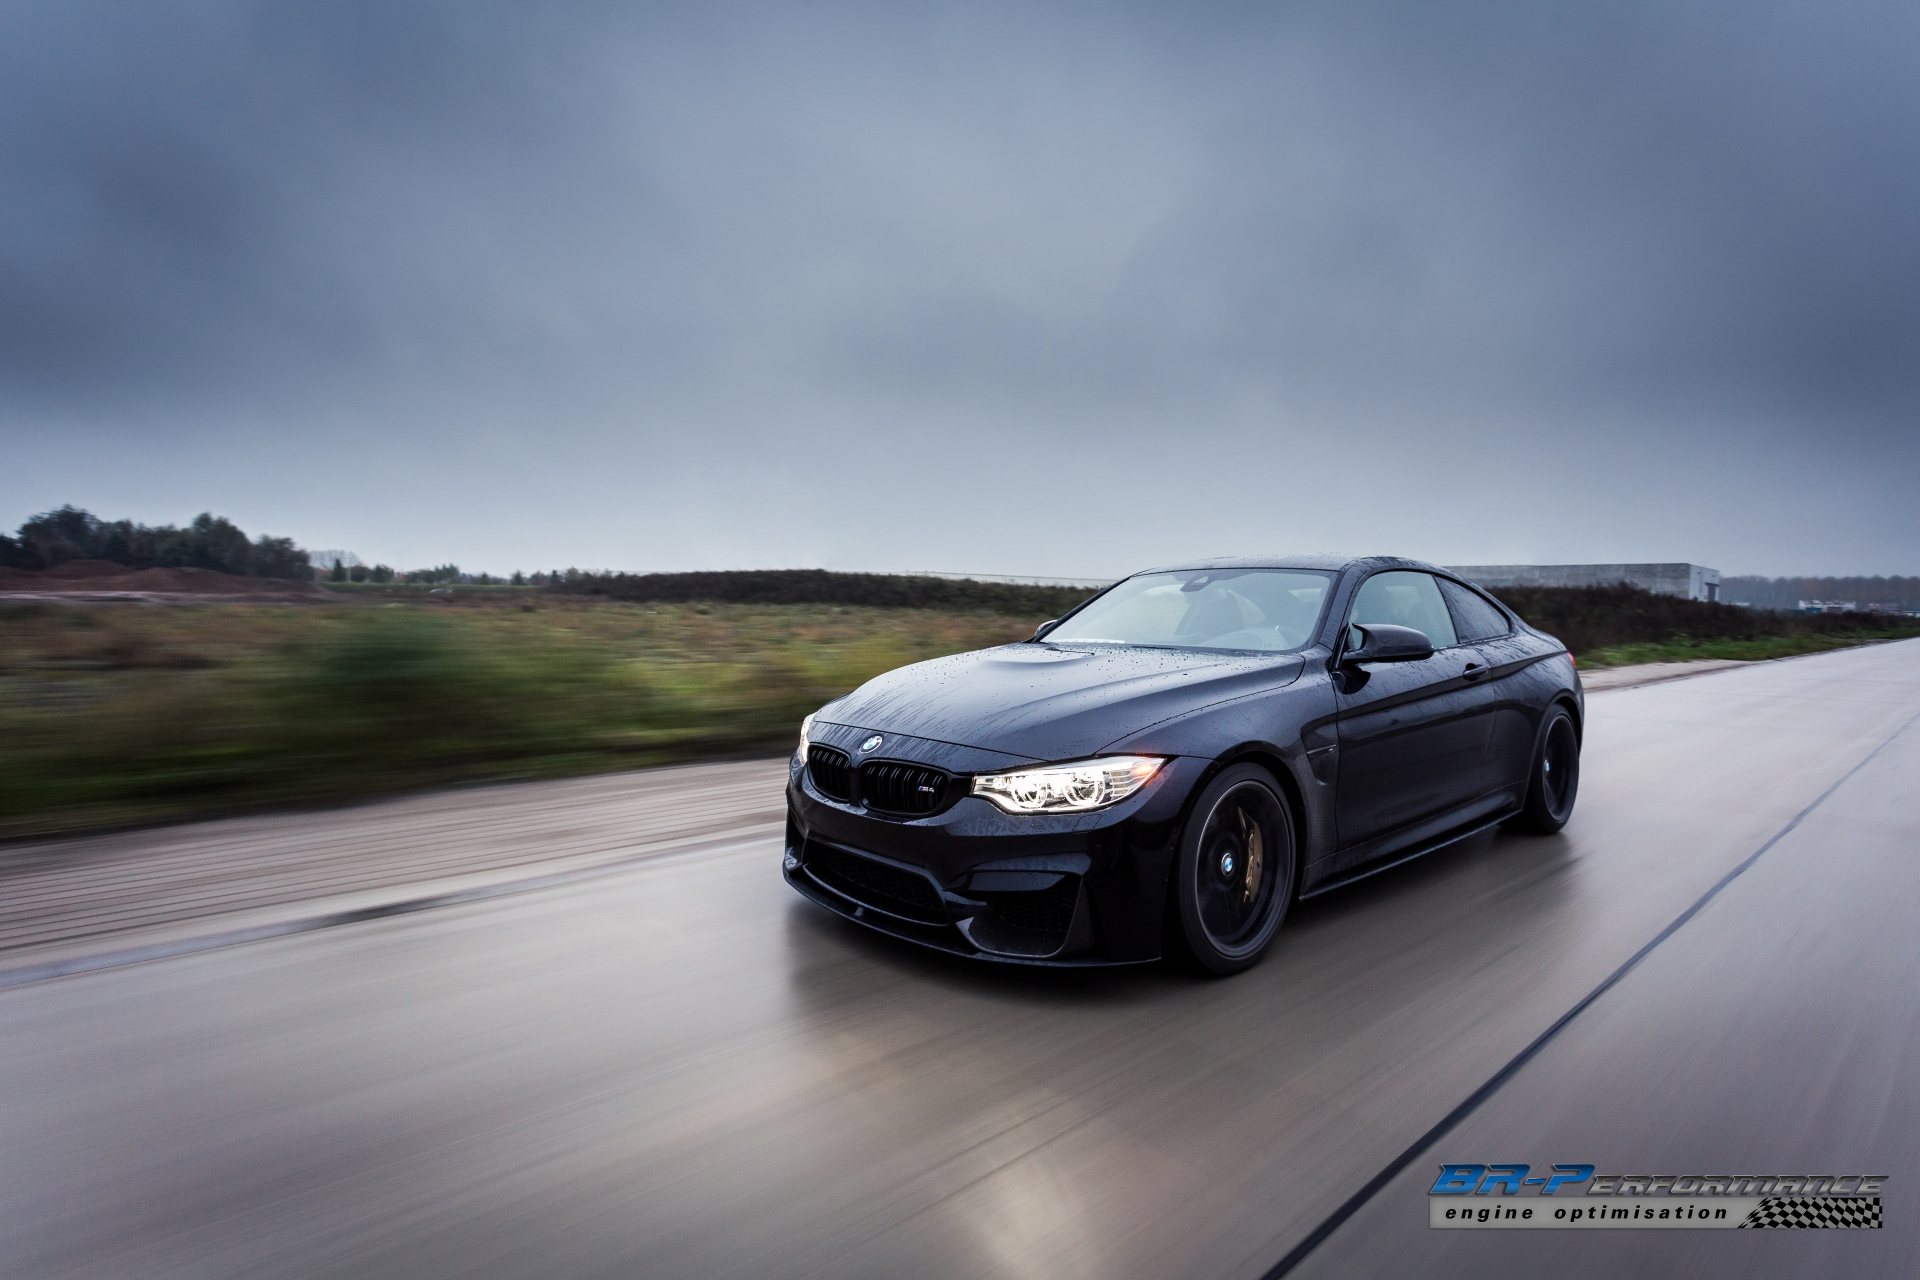 Azurite Black BMW M4 from BRPerformance Stole Our Soul